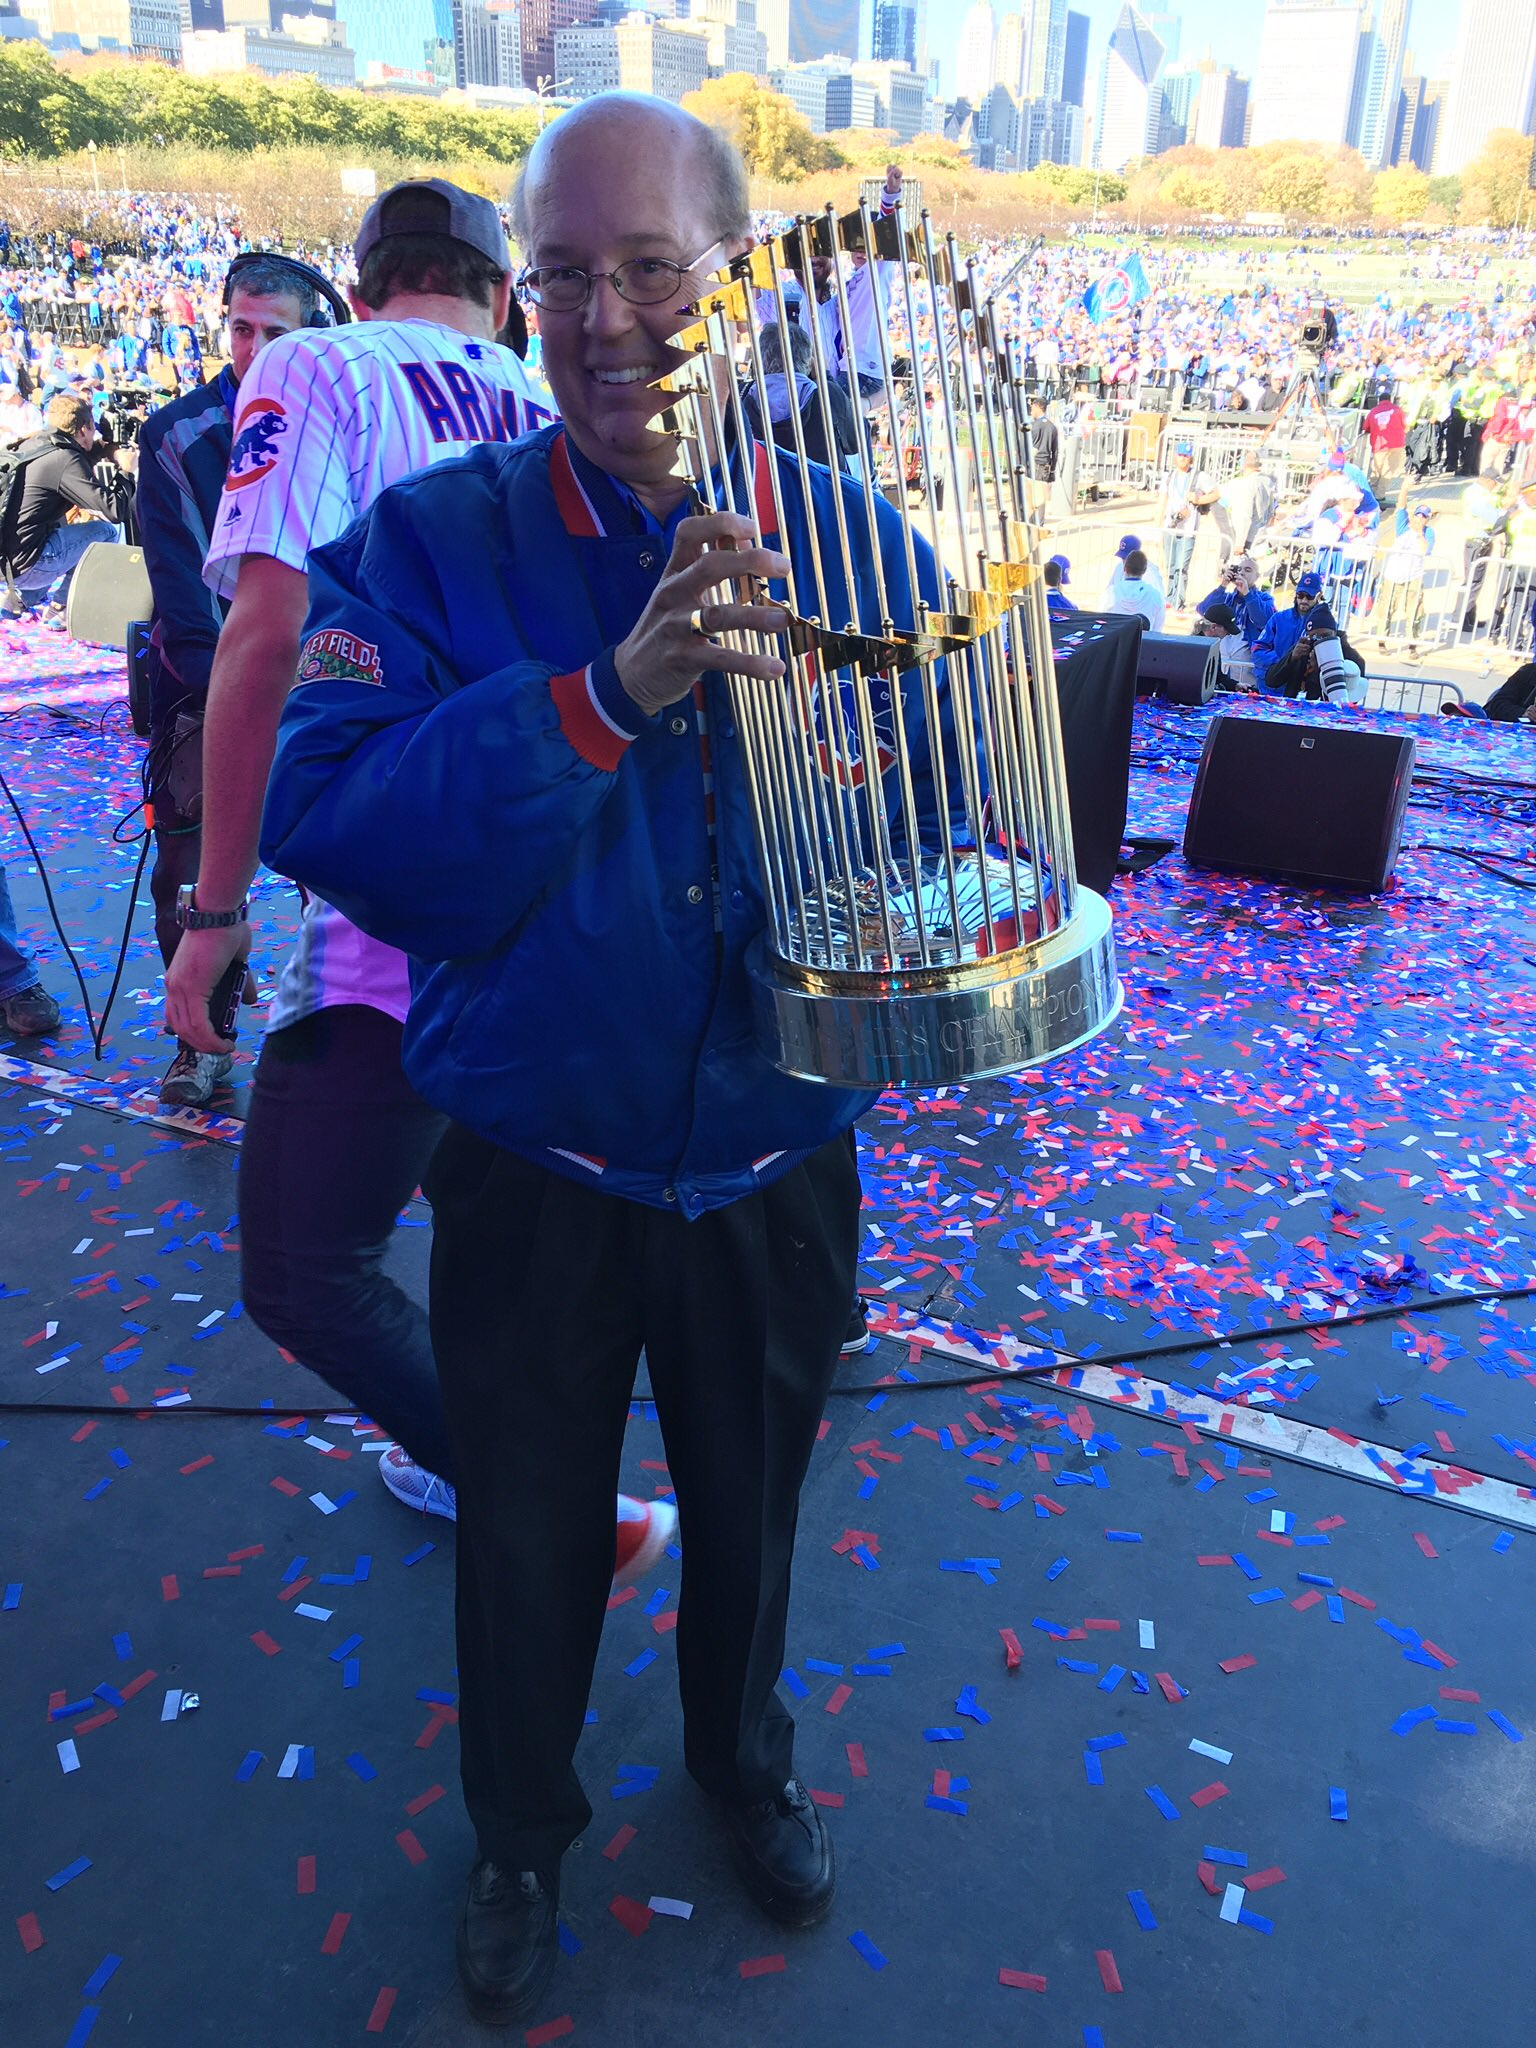 Hey Cubs fans, I hope you all had a great weekend and thought about those great memories from a year ago! -GP https://t.co/itOaaWxNYy